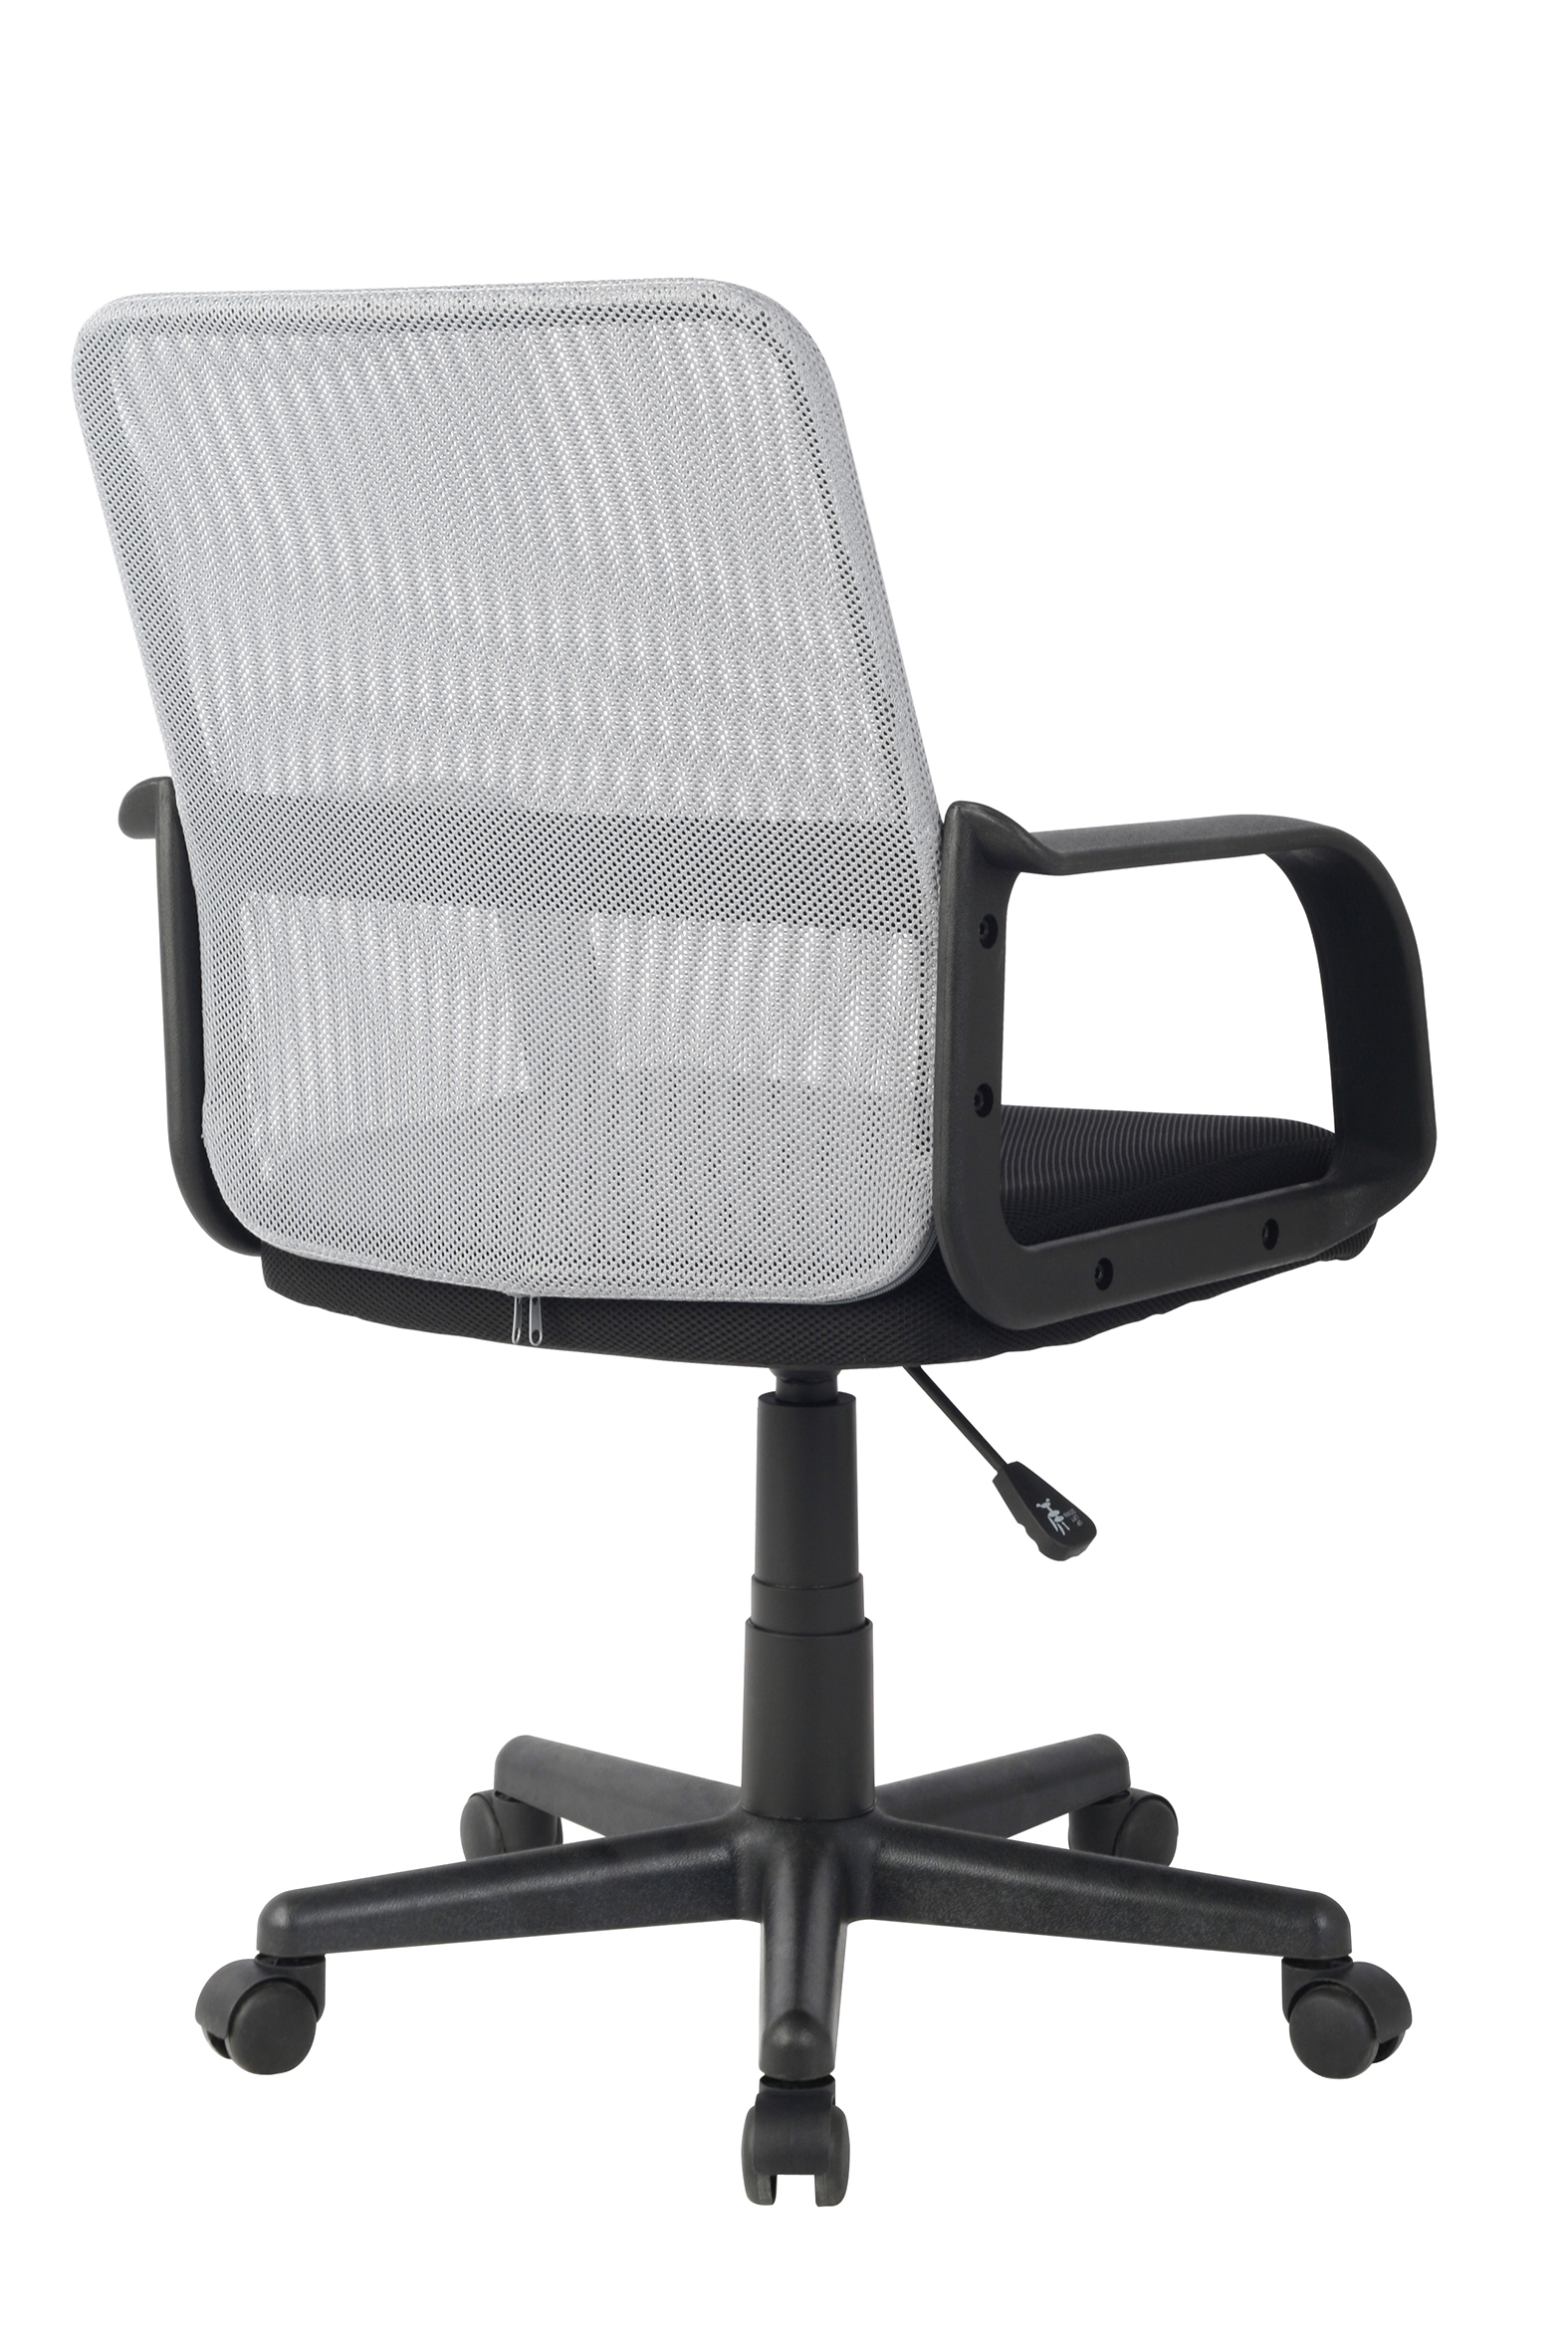 Sixbros office swivel chair different colors hlc 1278 2 for Different color chairs